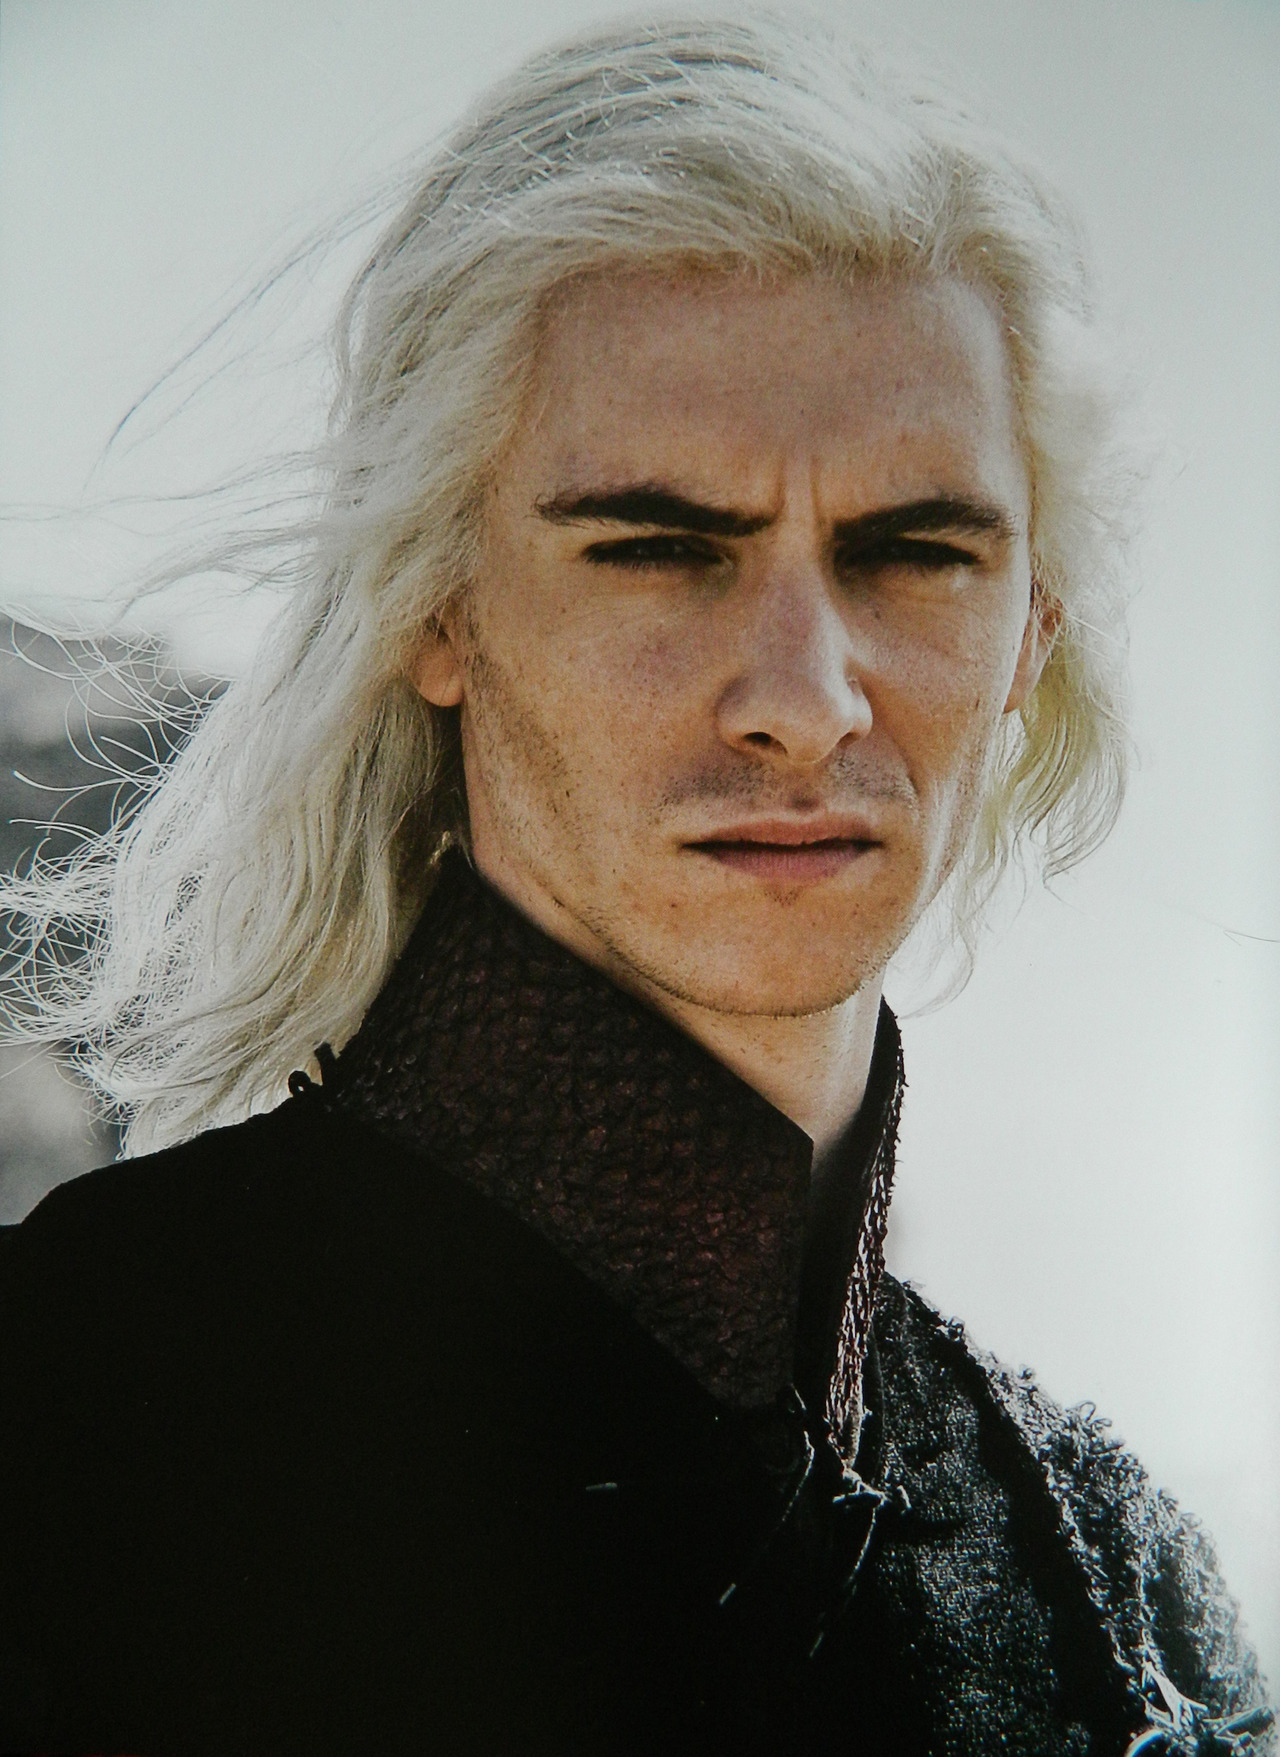 http://images6.fanpop.com/image/photos/32400000/Viserys-Targaryen-game-of-thrones-32430941-1280-1757.jpg